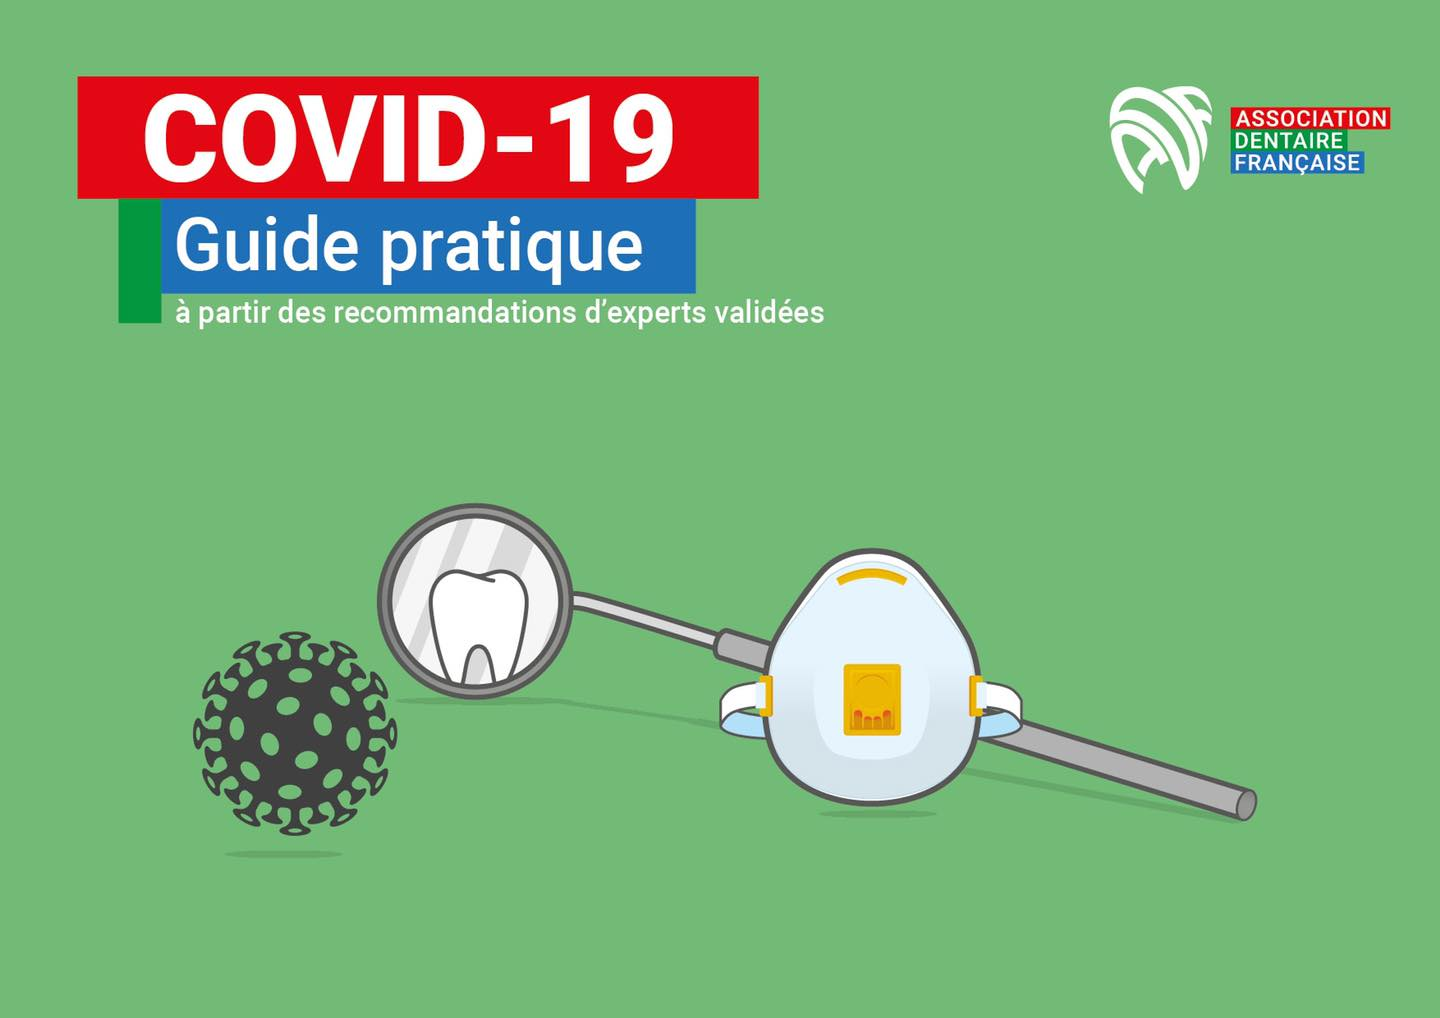 Covid19 GuidePratiqueADF